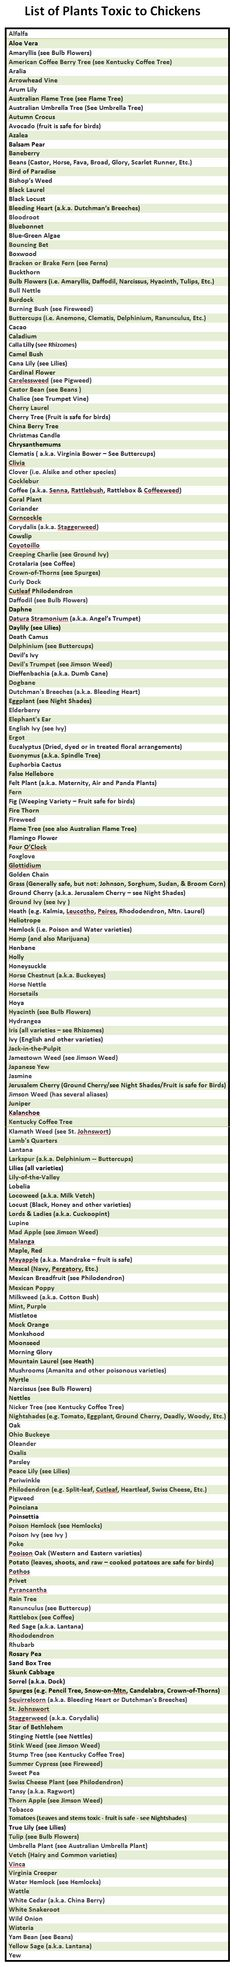 Building A Chicken Coop - List Of Plants Toxic To Chickens Urban Chicken Coop, Chicken Coop Plans, Building A Chicken Coop, Chicken Coops, Raising Backyard Chickens, Keeping Chickens, Backyard Farming, Urban Chickens, Chickens And Roosters